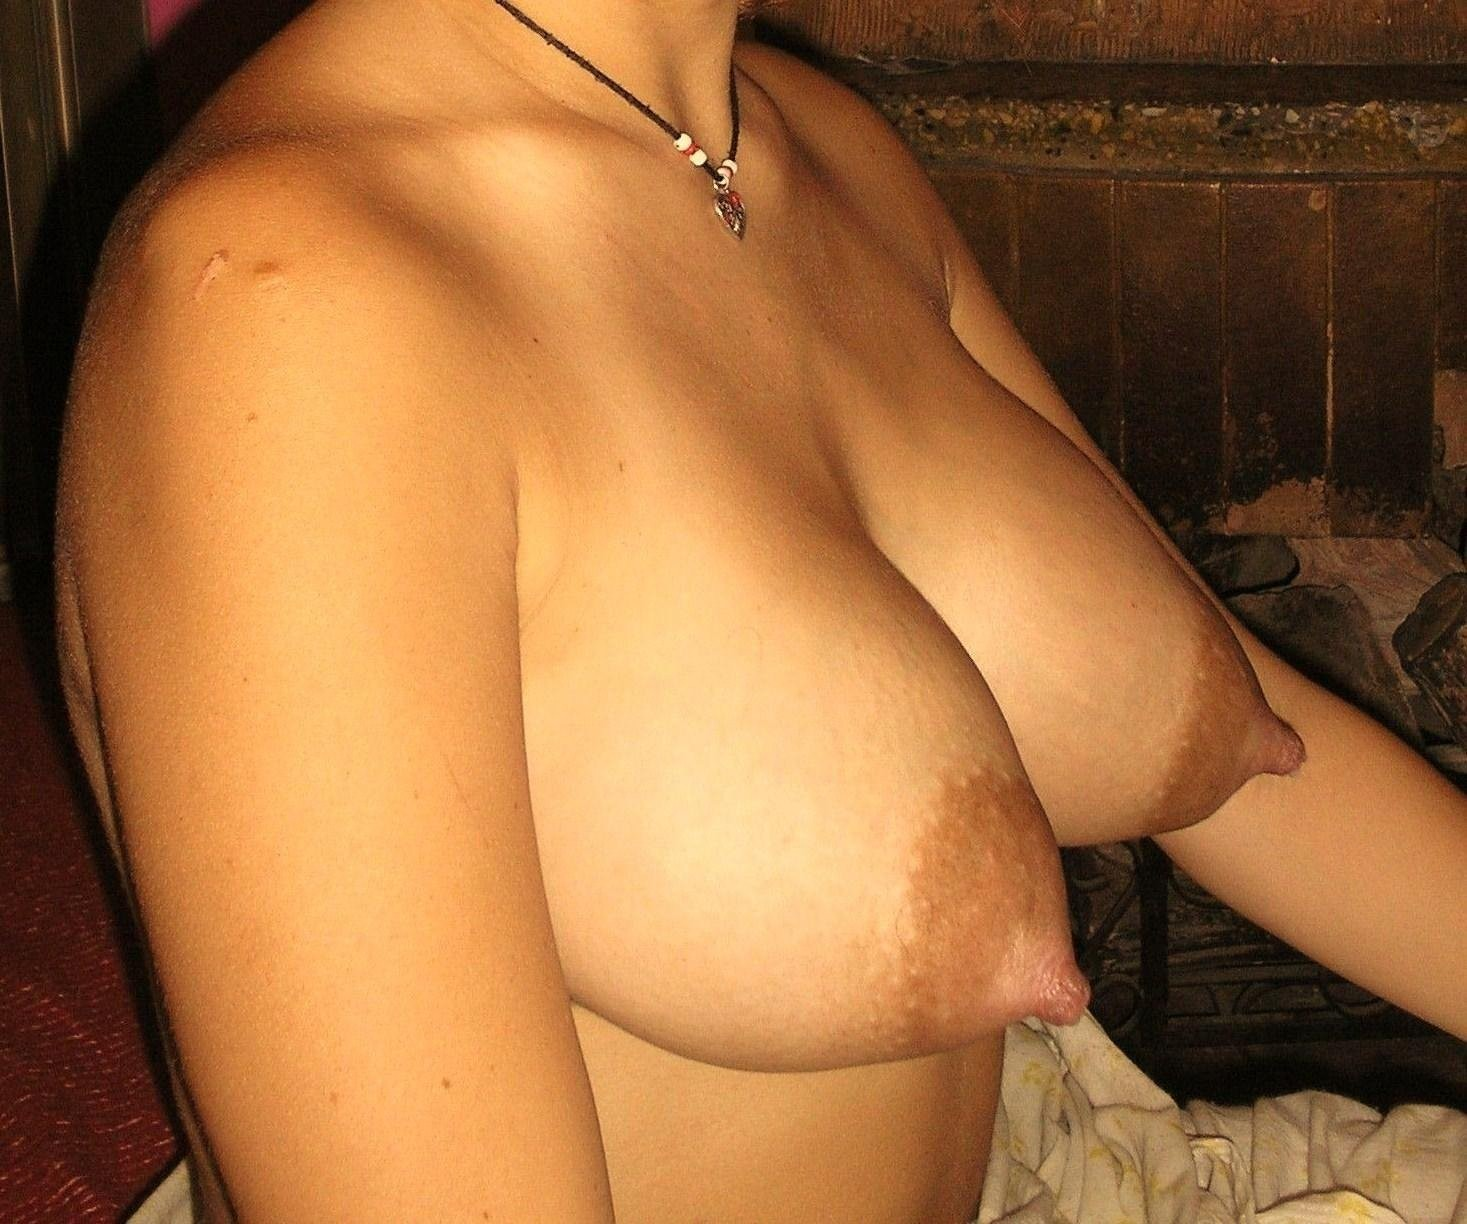 gallery nude pic – Amateur